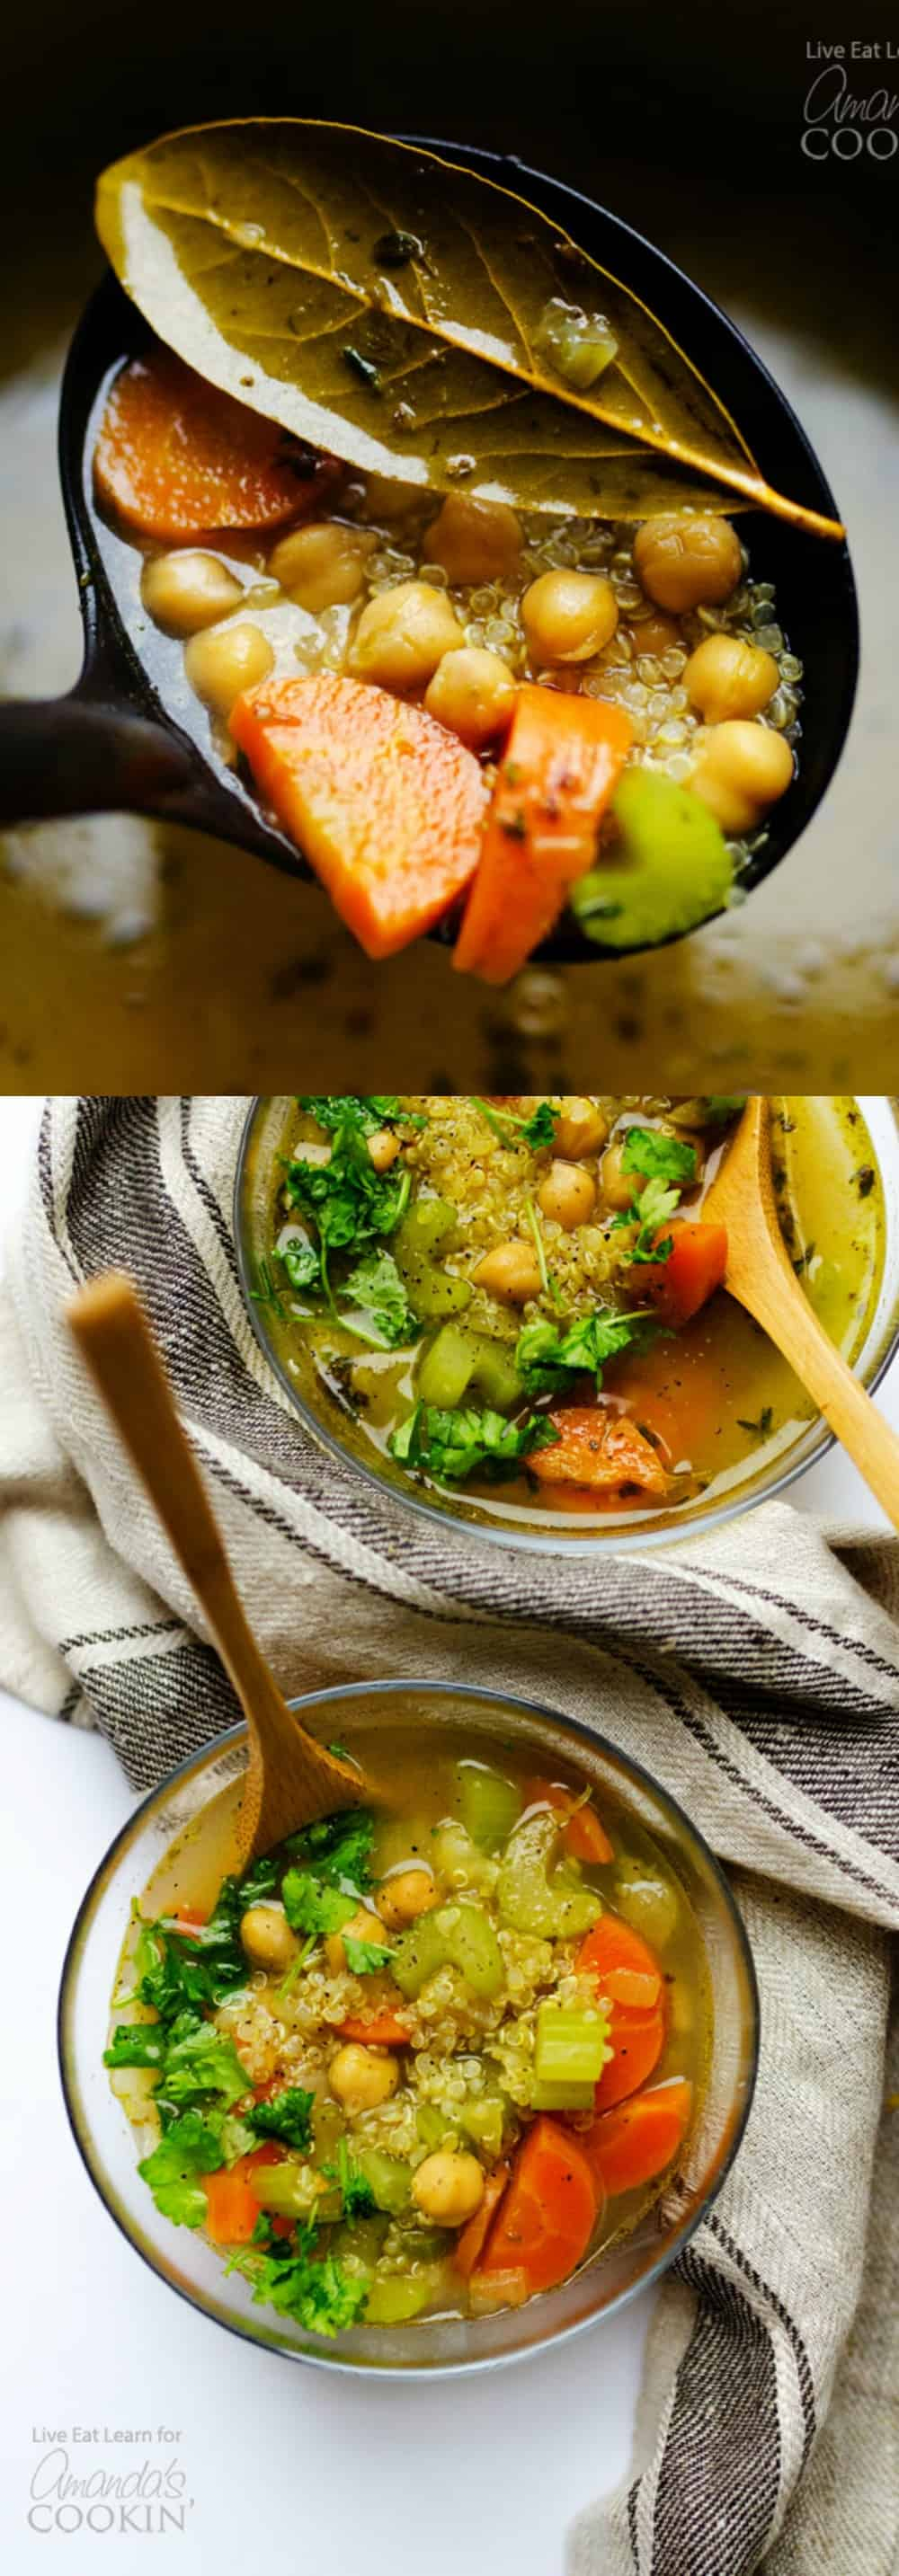 Need a healthy vegetable soup to warm your bones this winter? This hearty soup with quinoa and chickpeas has you covered!